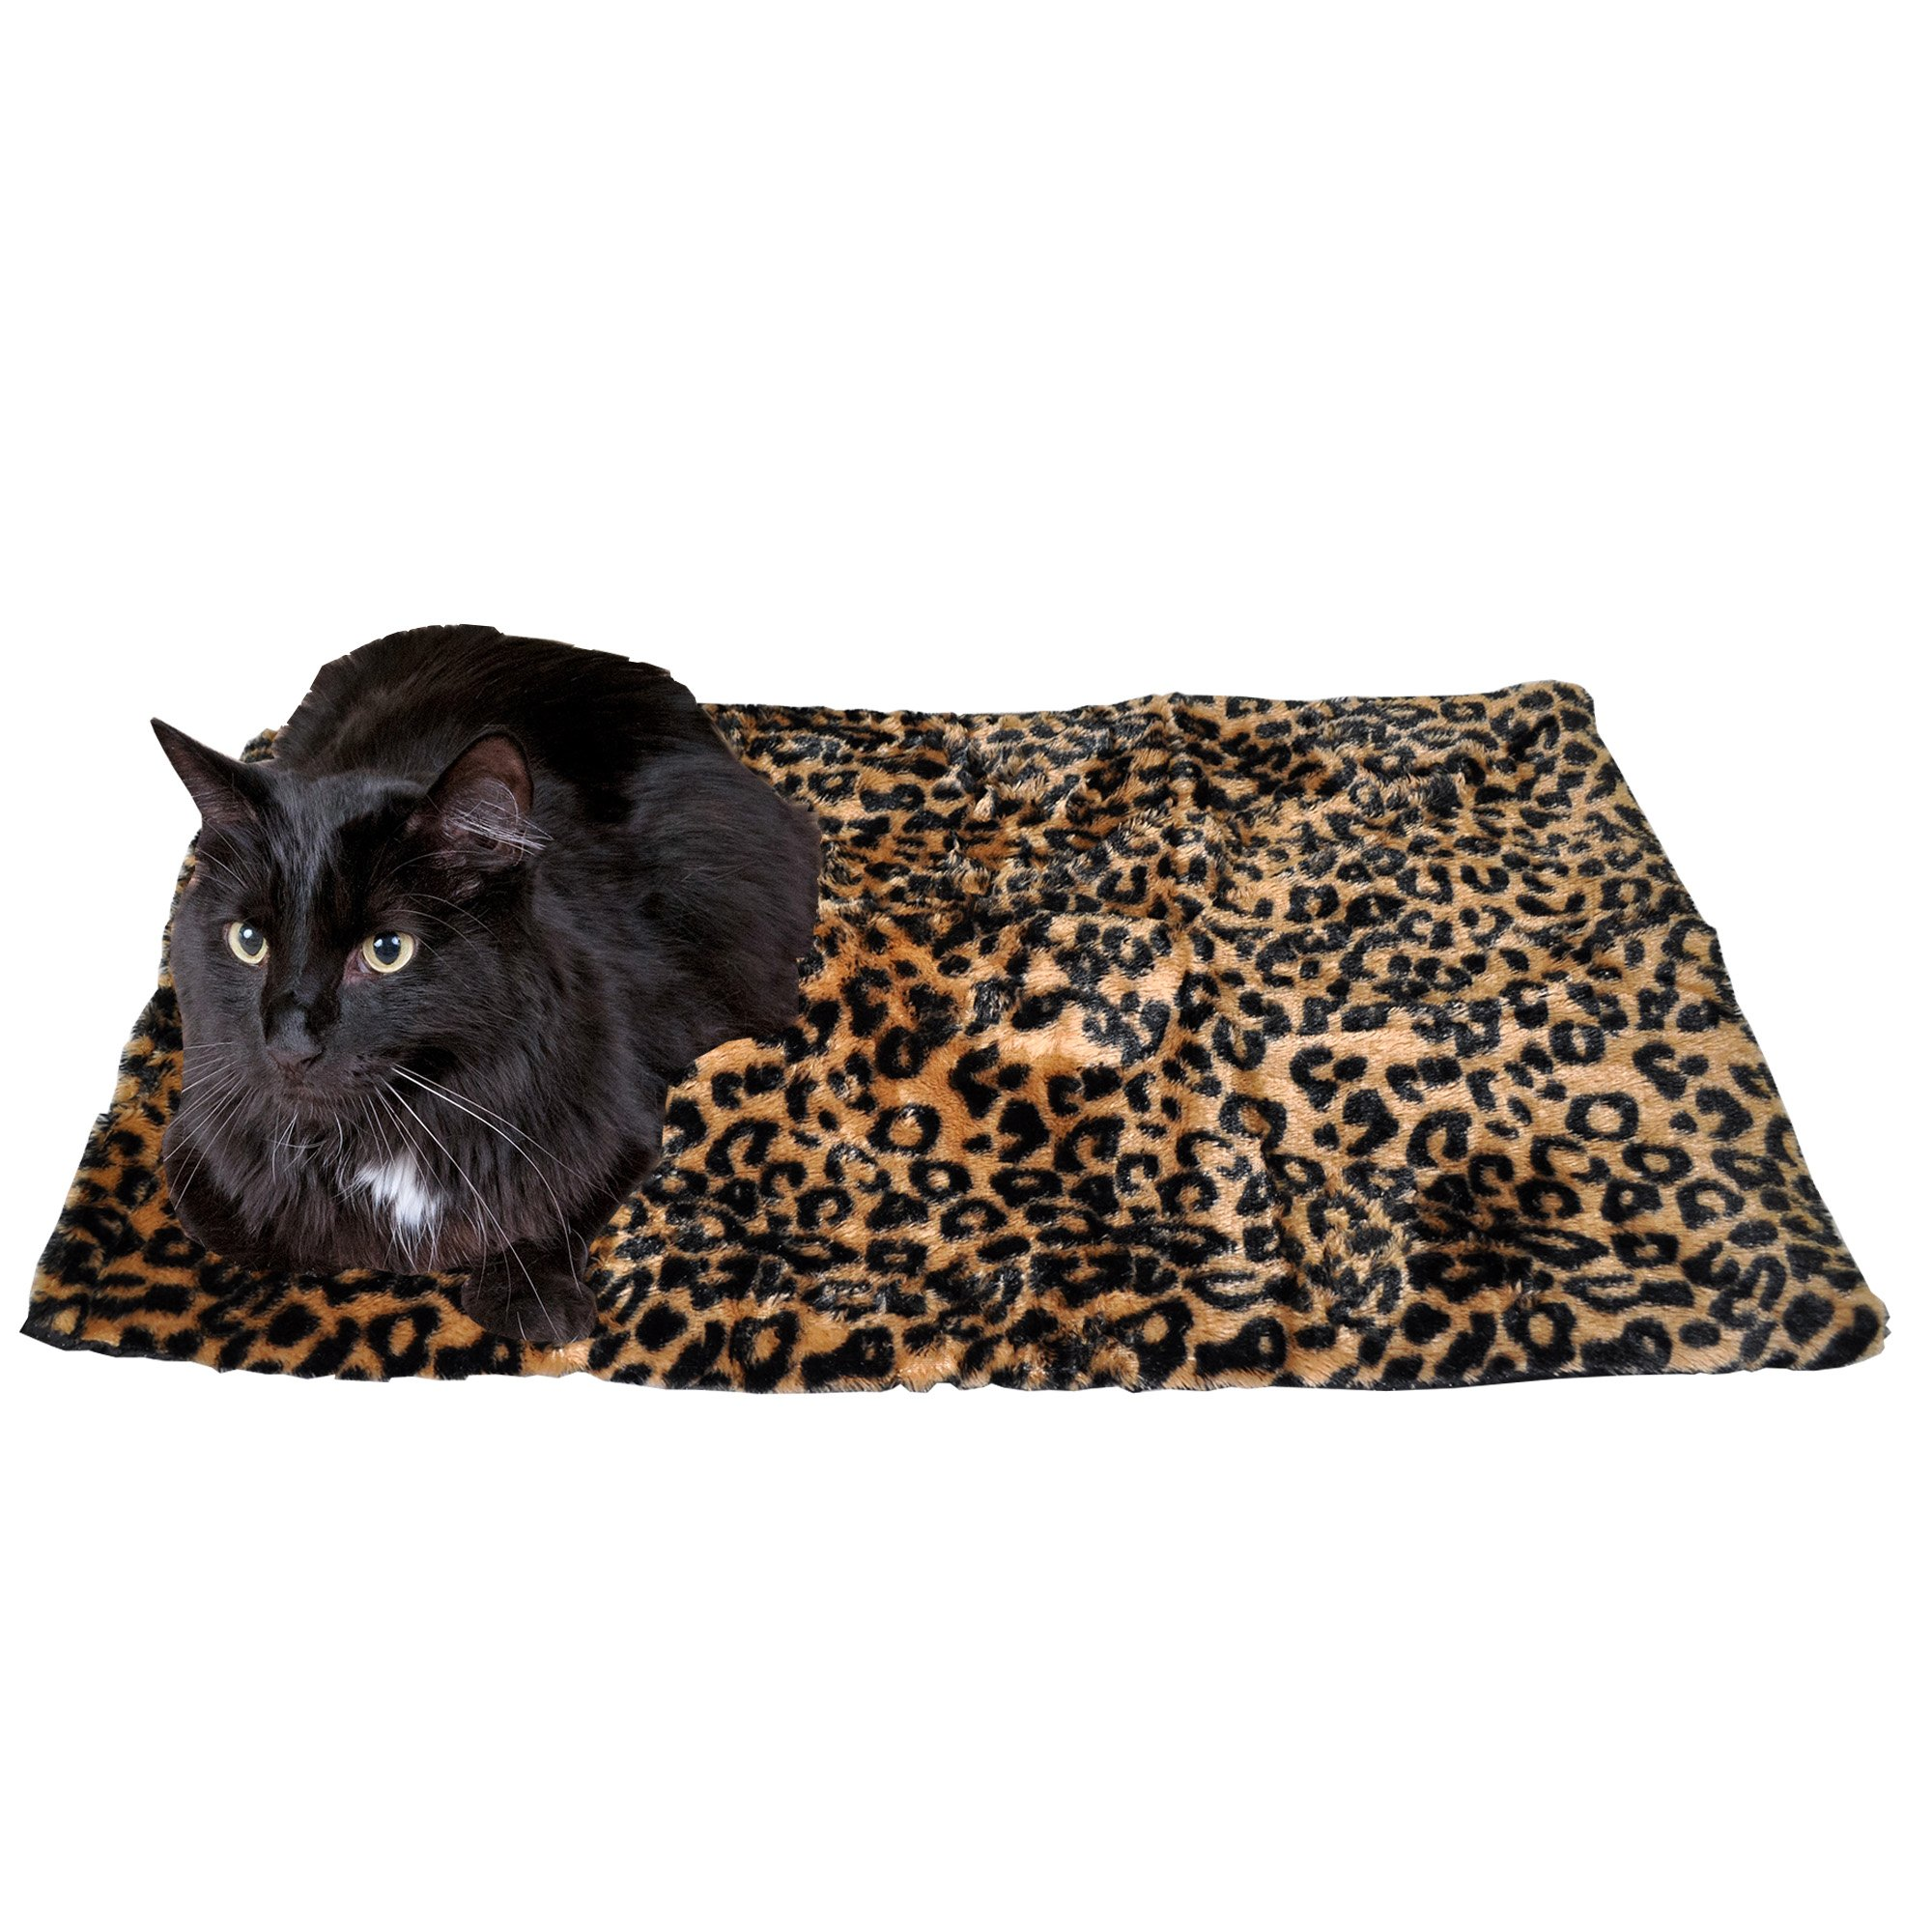 Thermal Cat Pet Dog Warming Bed Mat (Large, Beige)